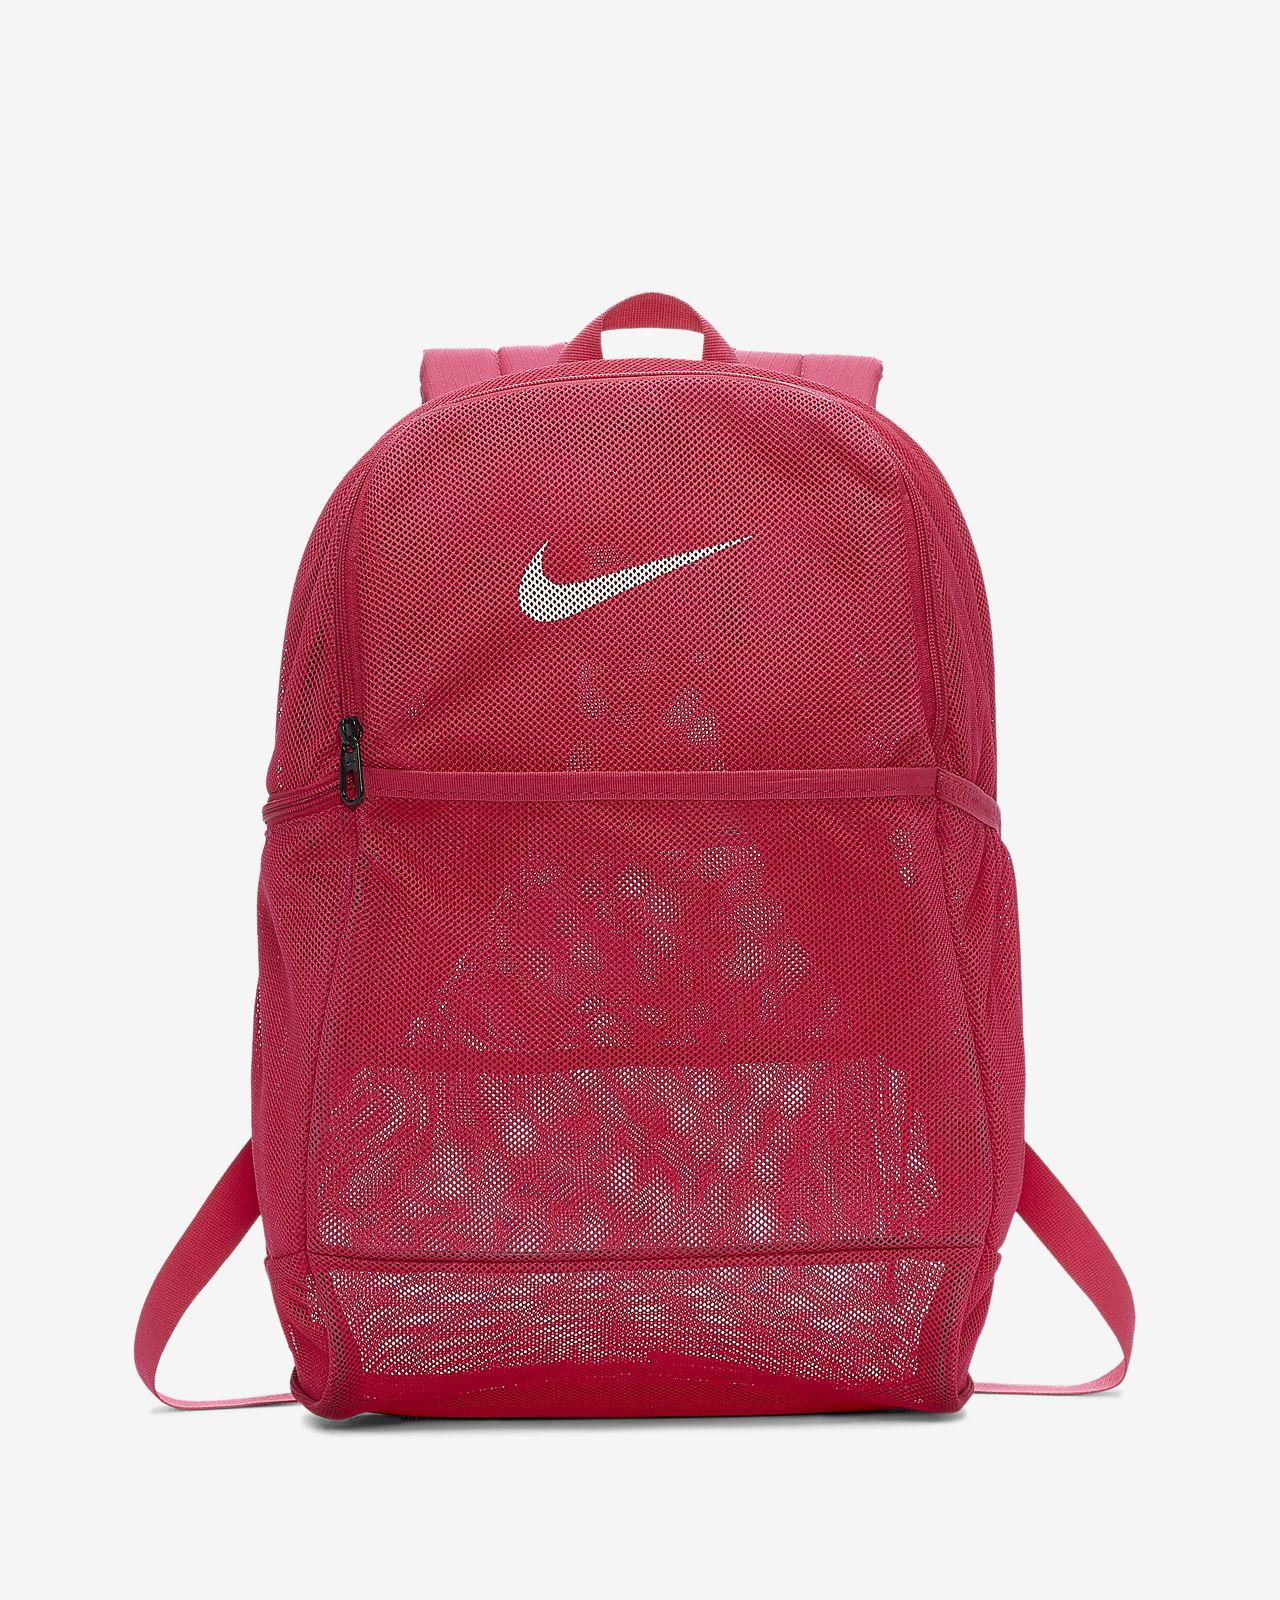 Nike Brasilia Mesh Training Backpack (26L)